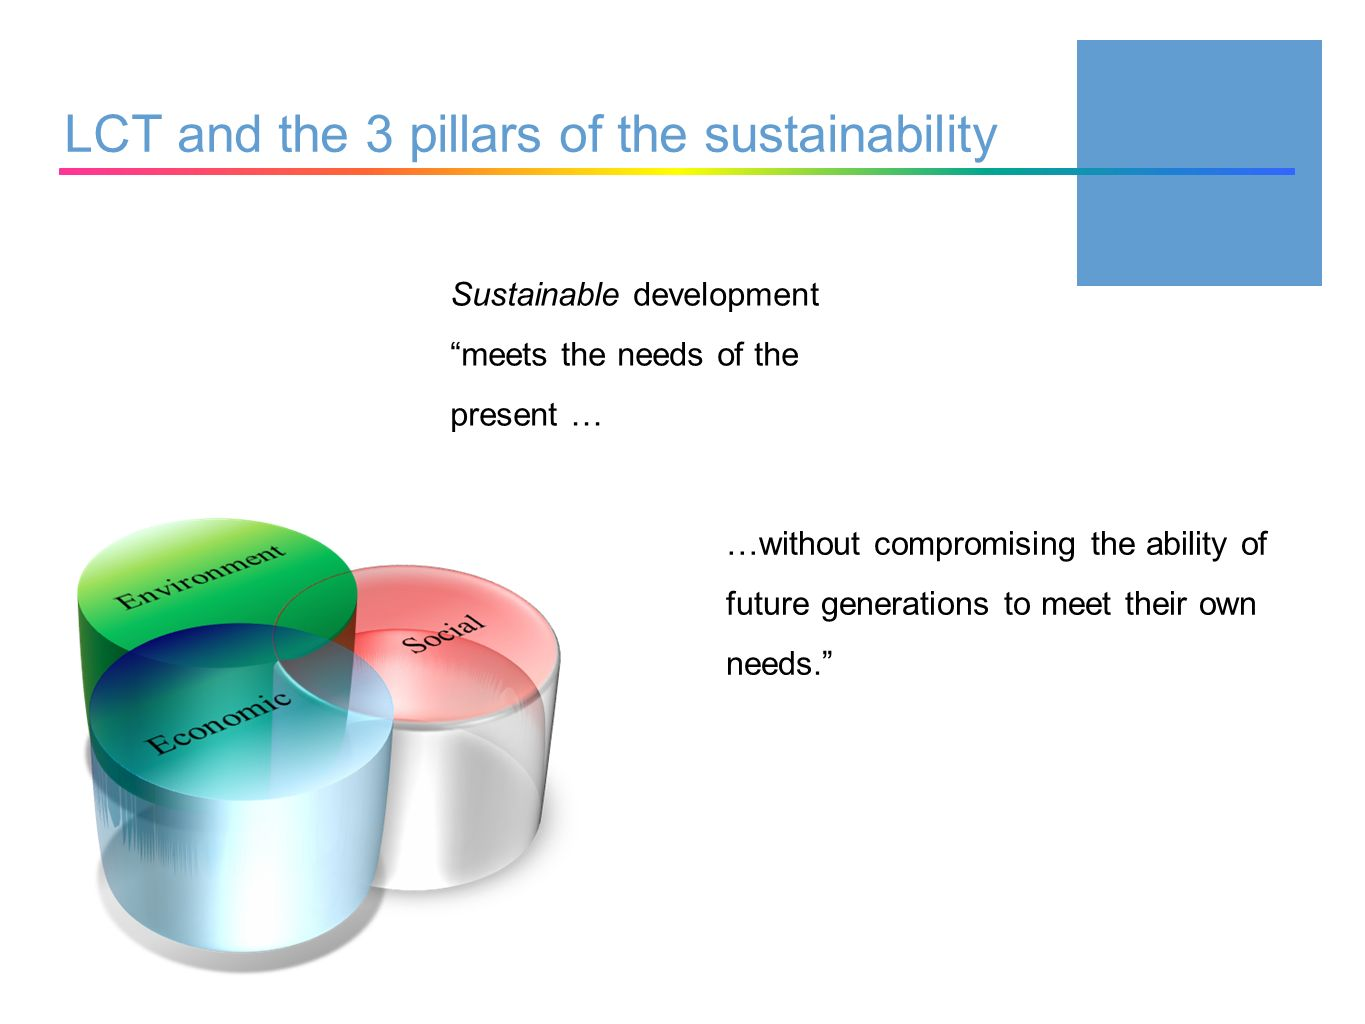 LCT and the 3 pillars of the sustainability